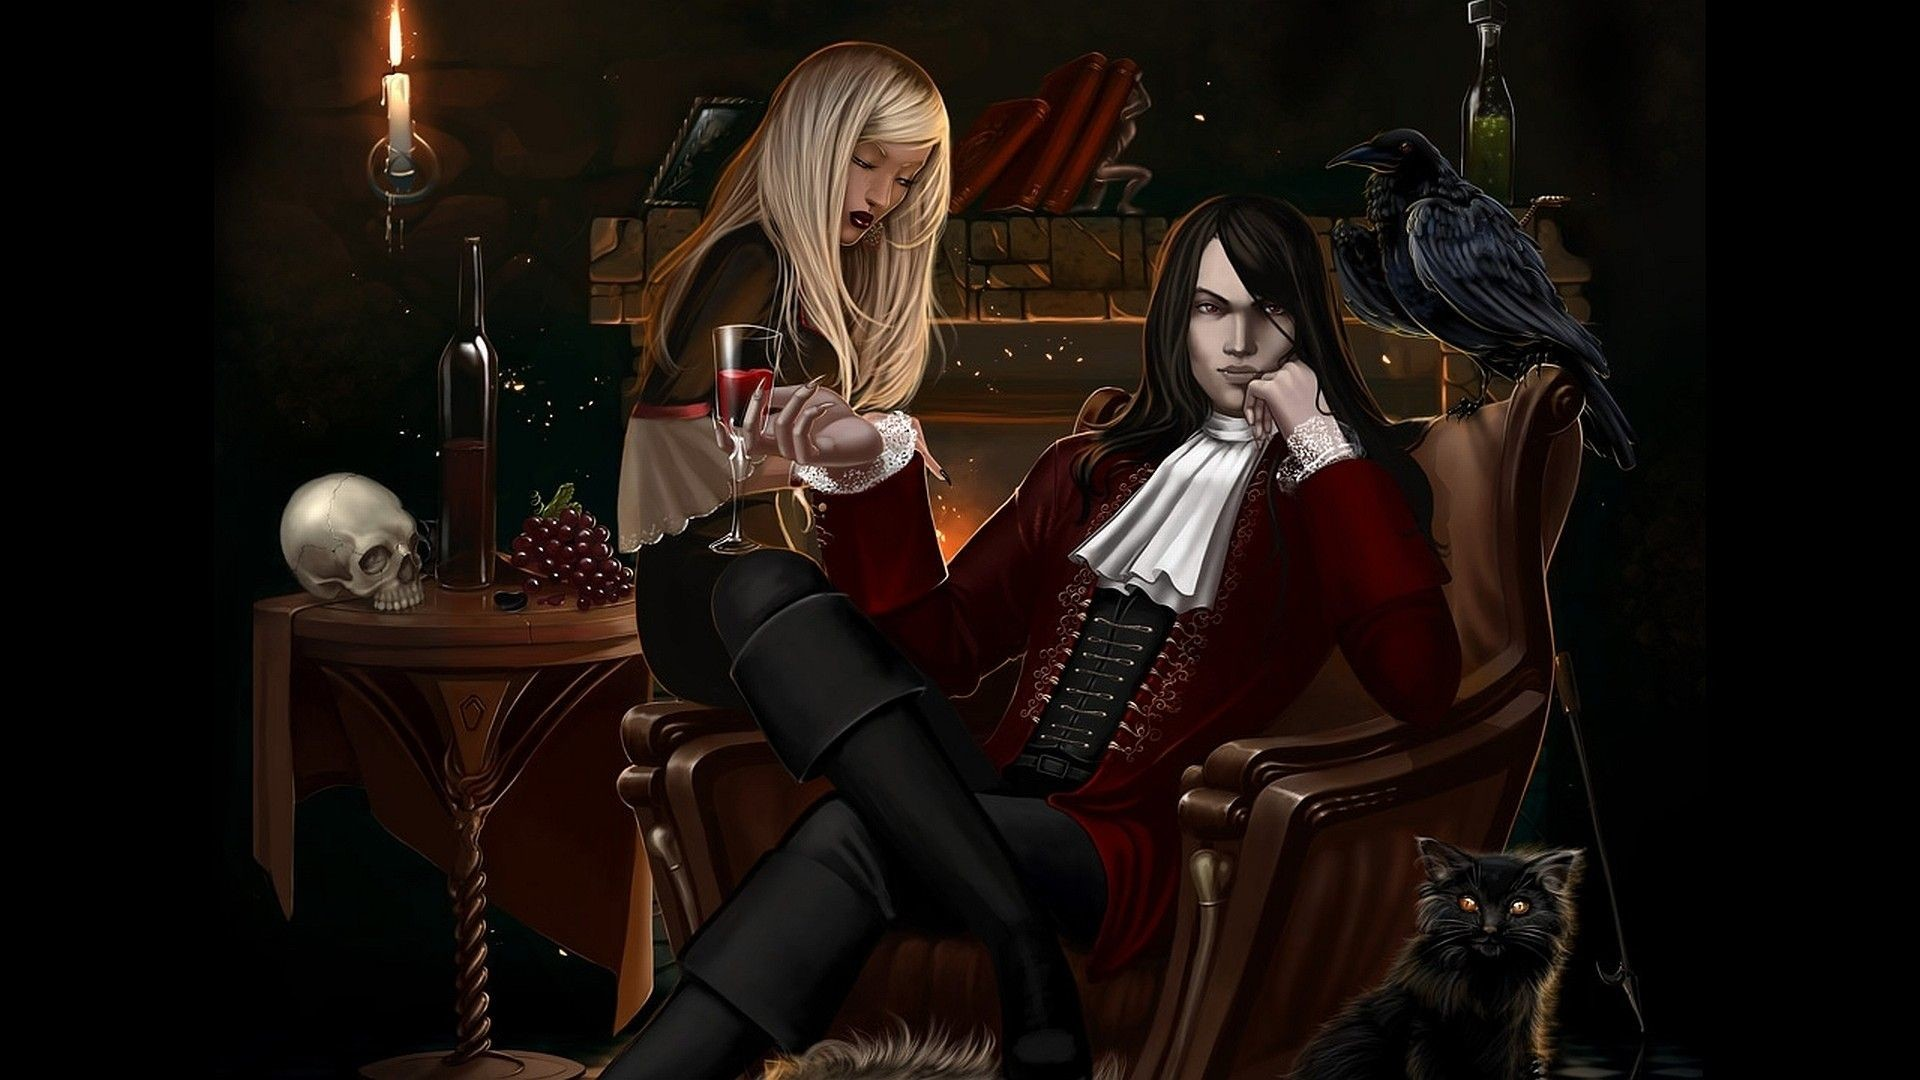 Res: 1920x1080, cool Gothic Vampire Wallpaper